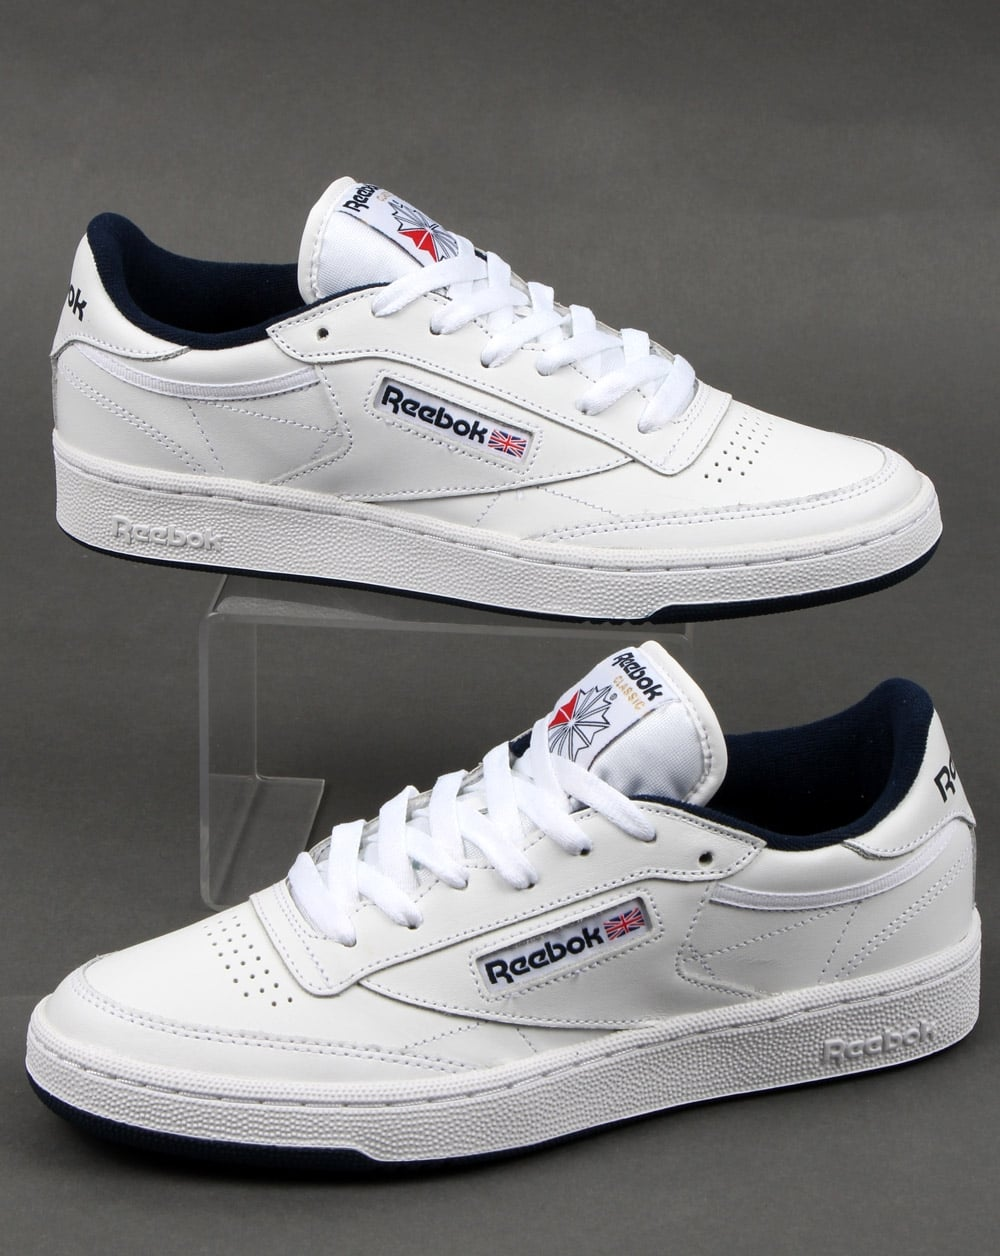 9b719a27d2a Reebok Reebok Club C 85 Trainers White Navy